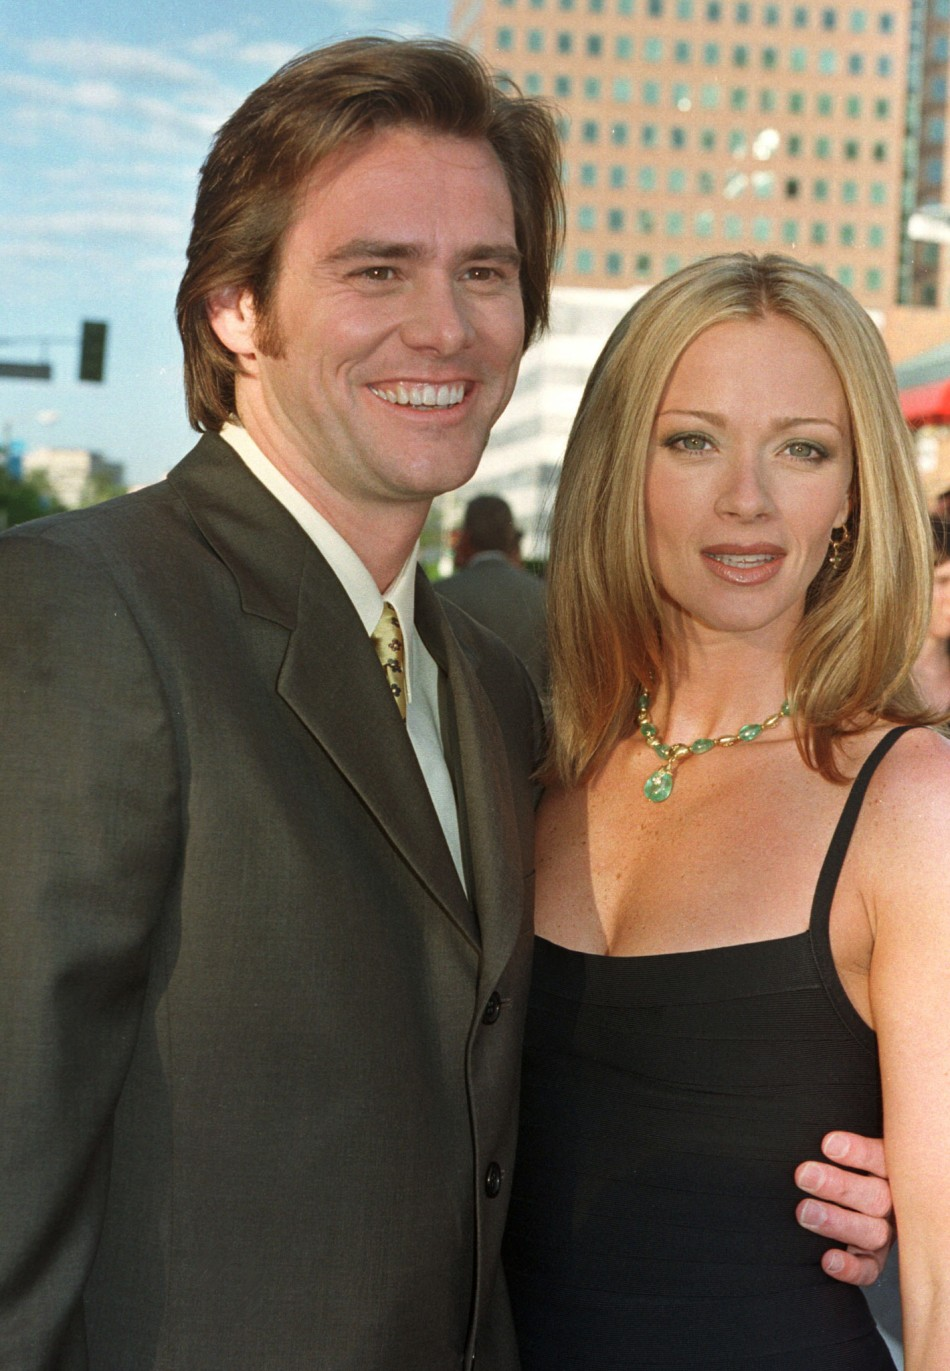 Jim Carrey started dating his Dumb and Dumber co-star Lauren Holly in 1994 before tying the knot on 23 September, 1996. The marriage did not last and they divorced a year later.